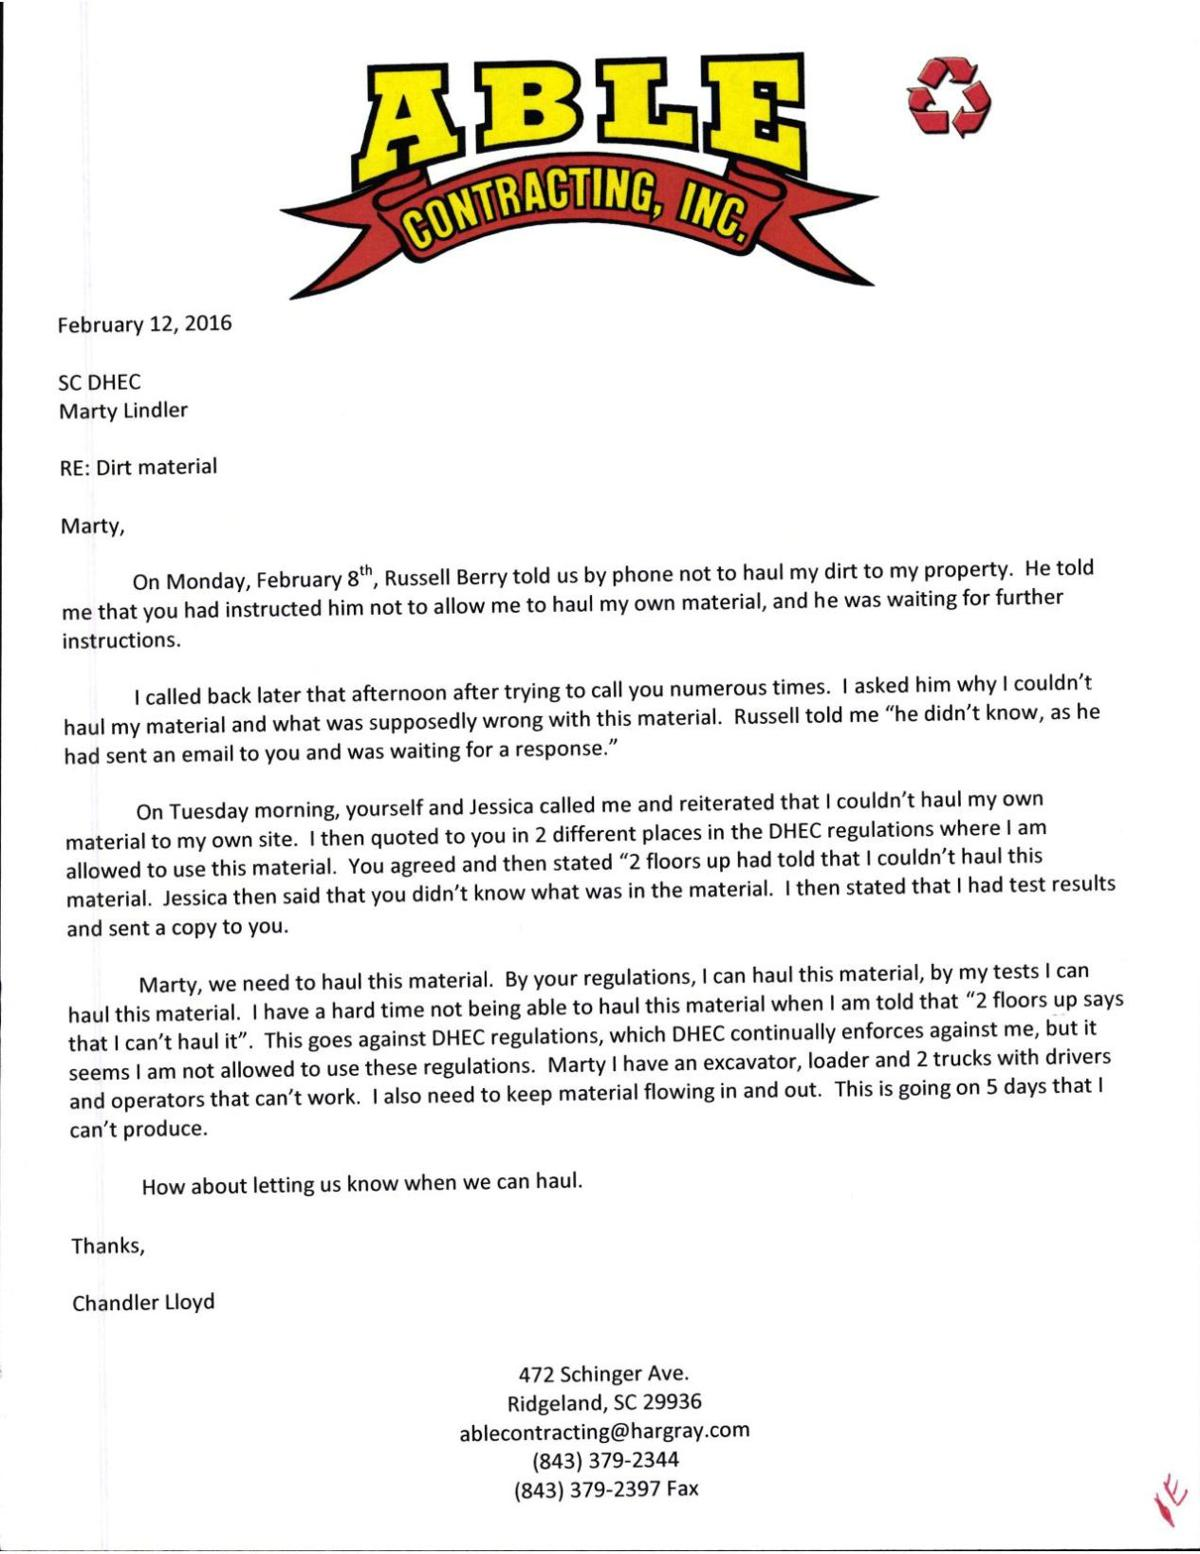 Able Contracting 2016 letter to DHEC